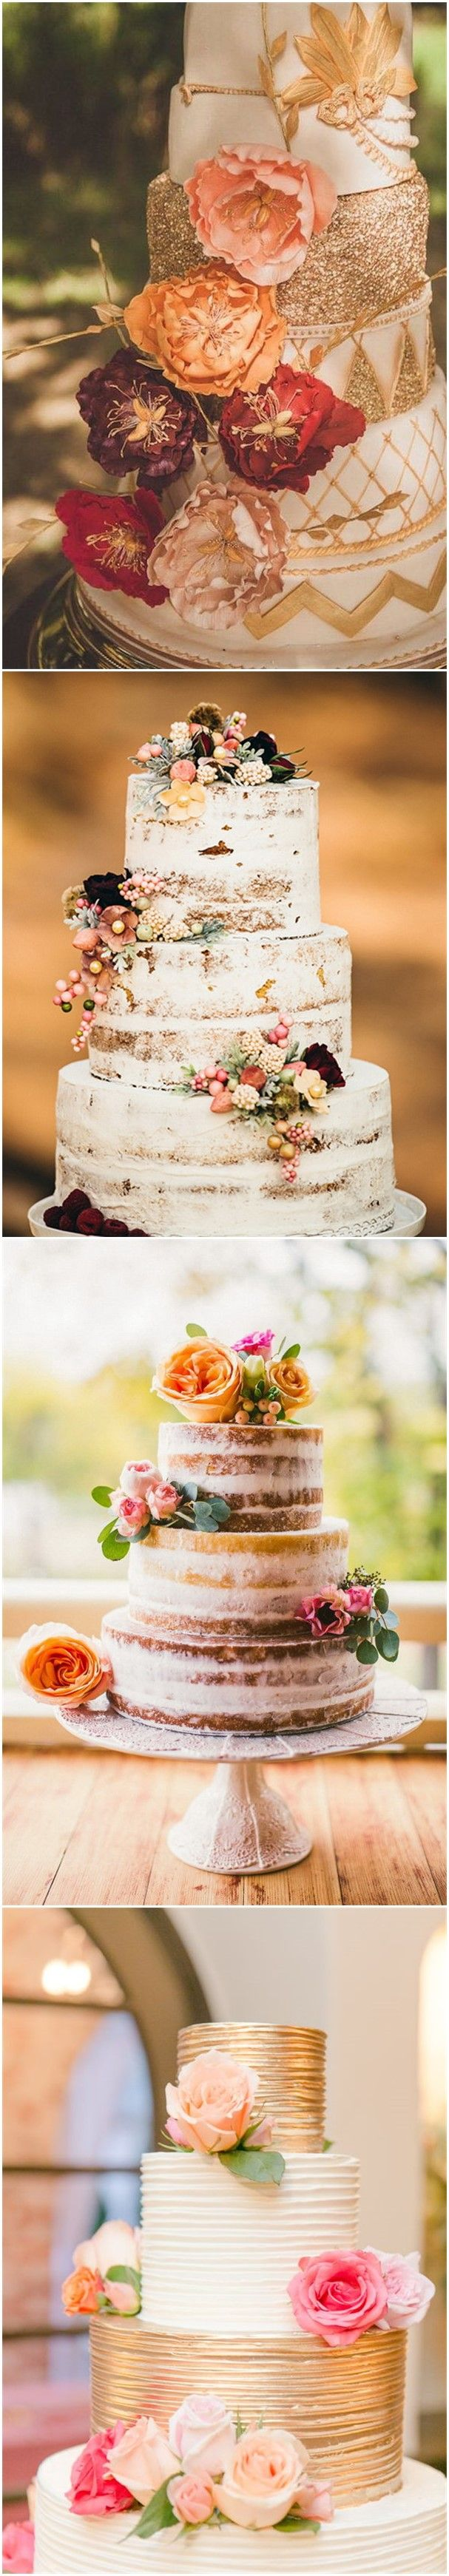 Best Wedding Cakes With Cupcakes Ideas On Pinterest